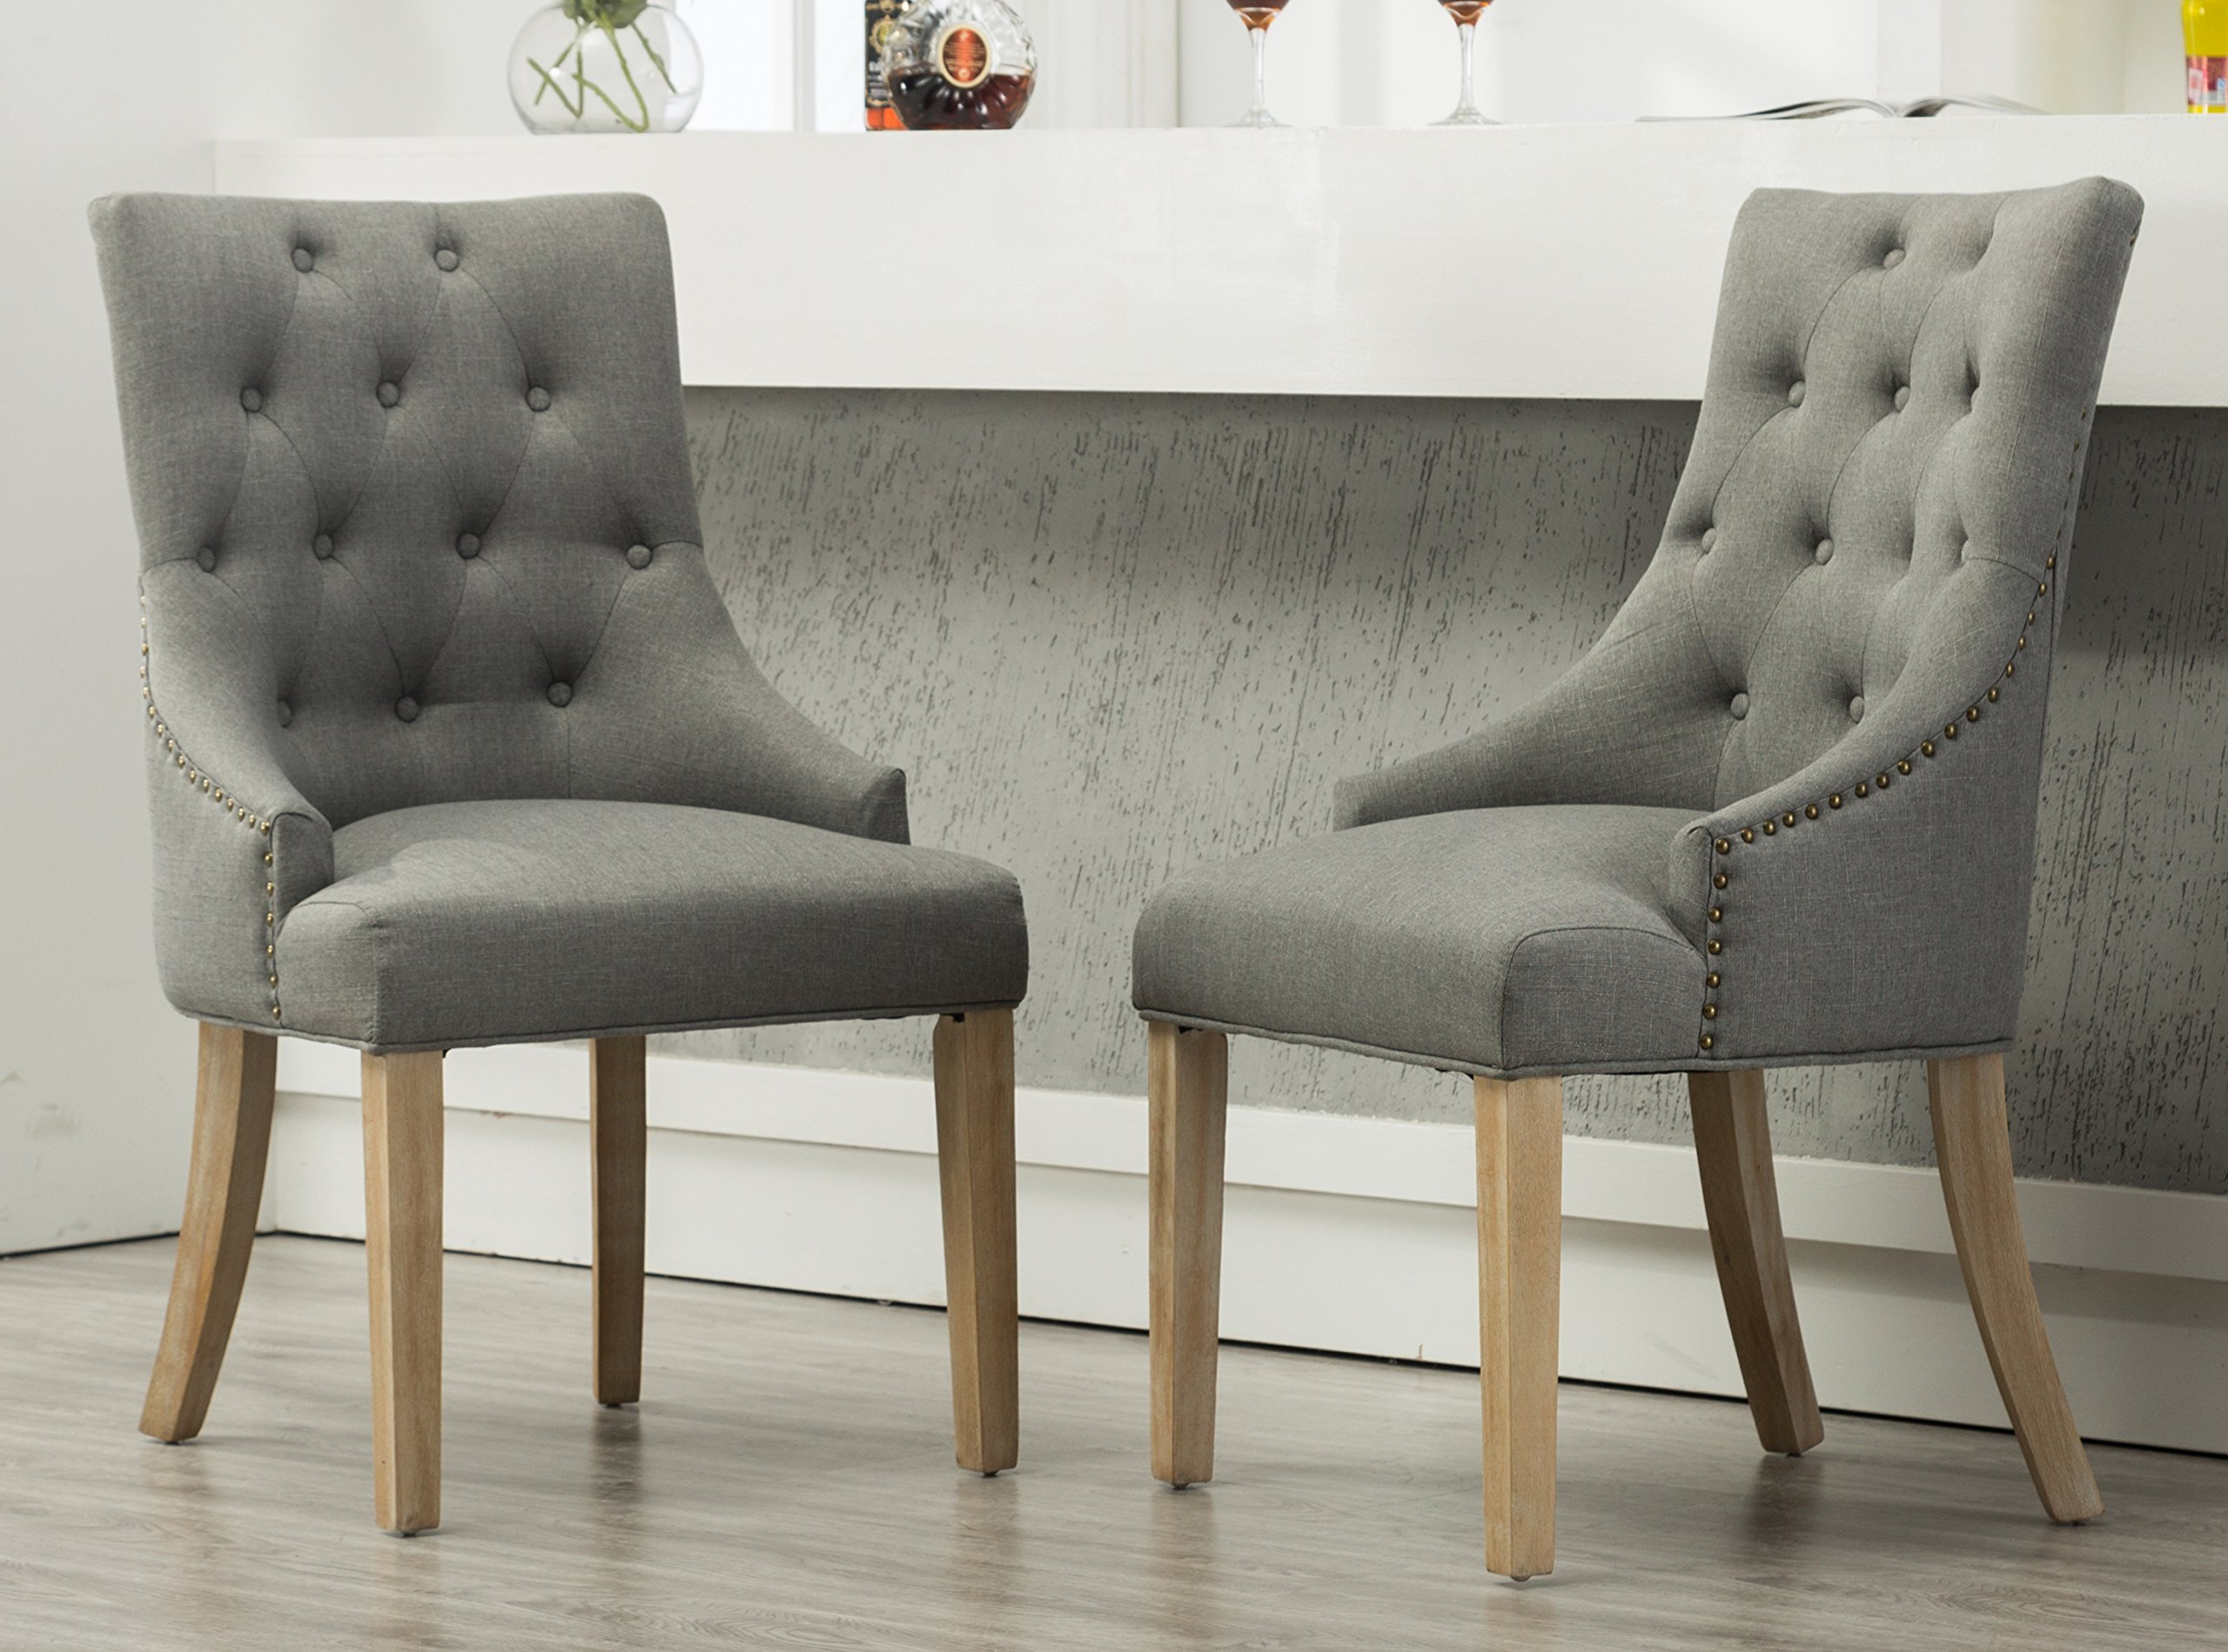 Roundhill Furniture C169GY Button Tufted Solid Wood Wingback Hostess Chairs with Nail Heads, Set of 2, Grey by Roundhill Furniture